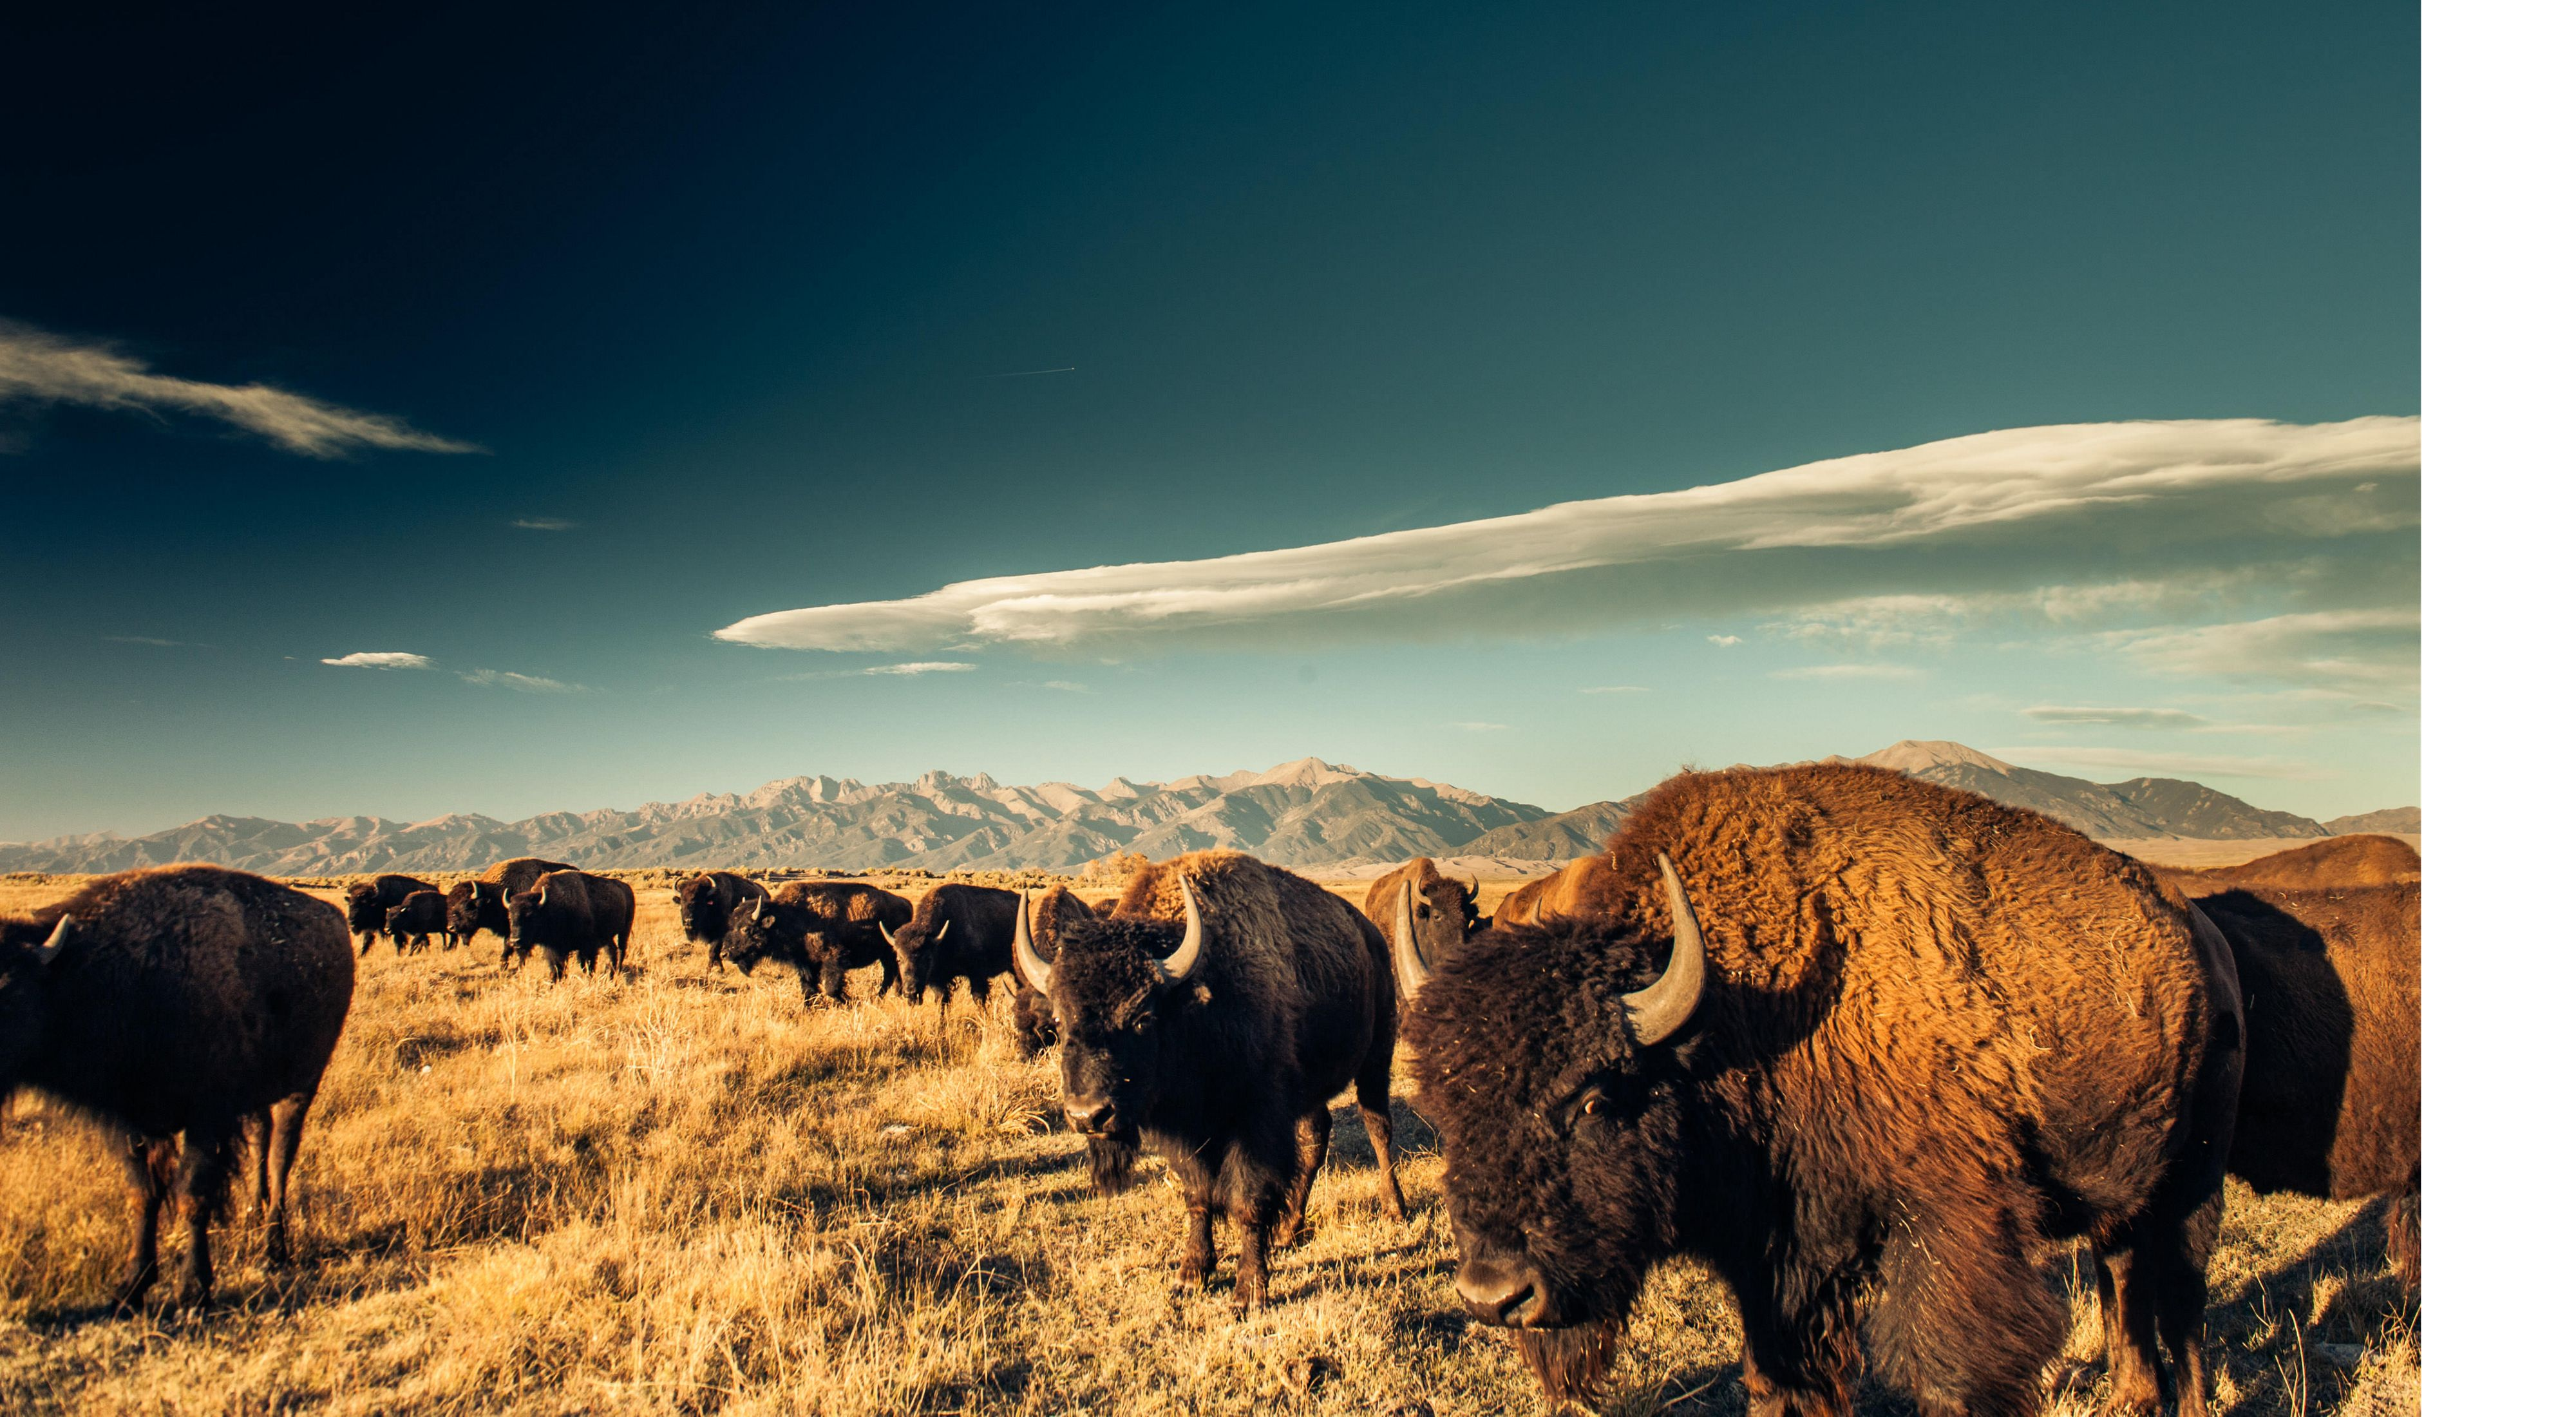 (ALL INTERNAL RIGHTS, LIMITED EXTERNAL RIGHTS) Bison (Bison bison) grazing on the Zapata Ranch with the Great Sand Dunes NP and Sangre de Cristo mountains in the background, Colorado USA. PHOTO CREDIT: © Nick Hall